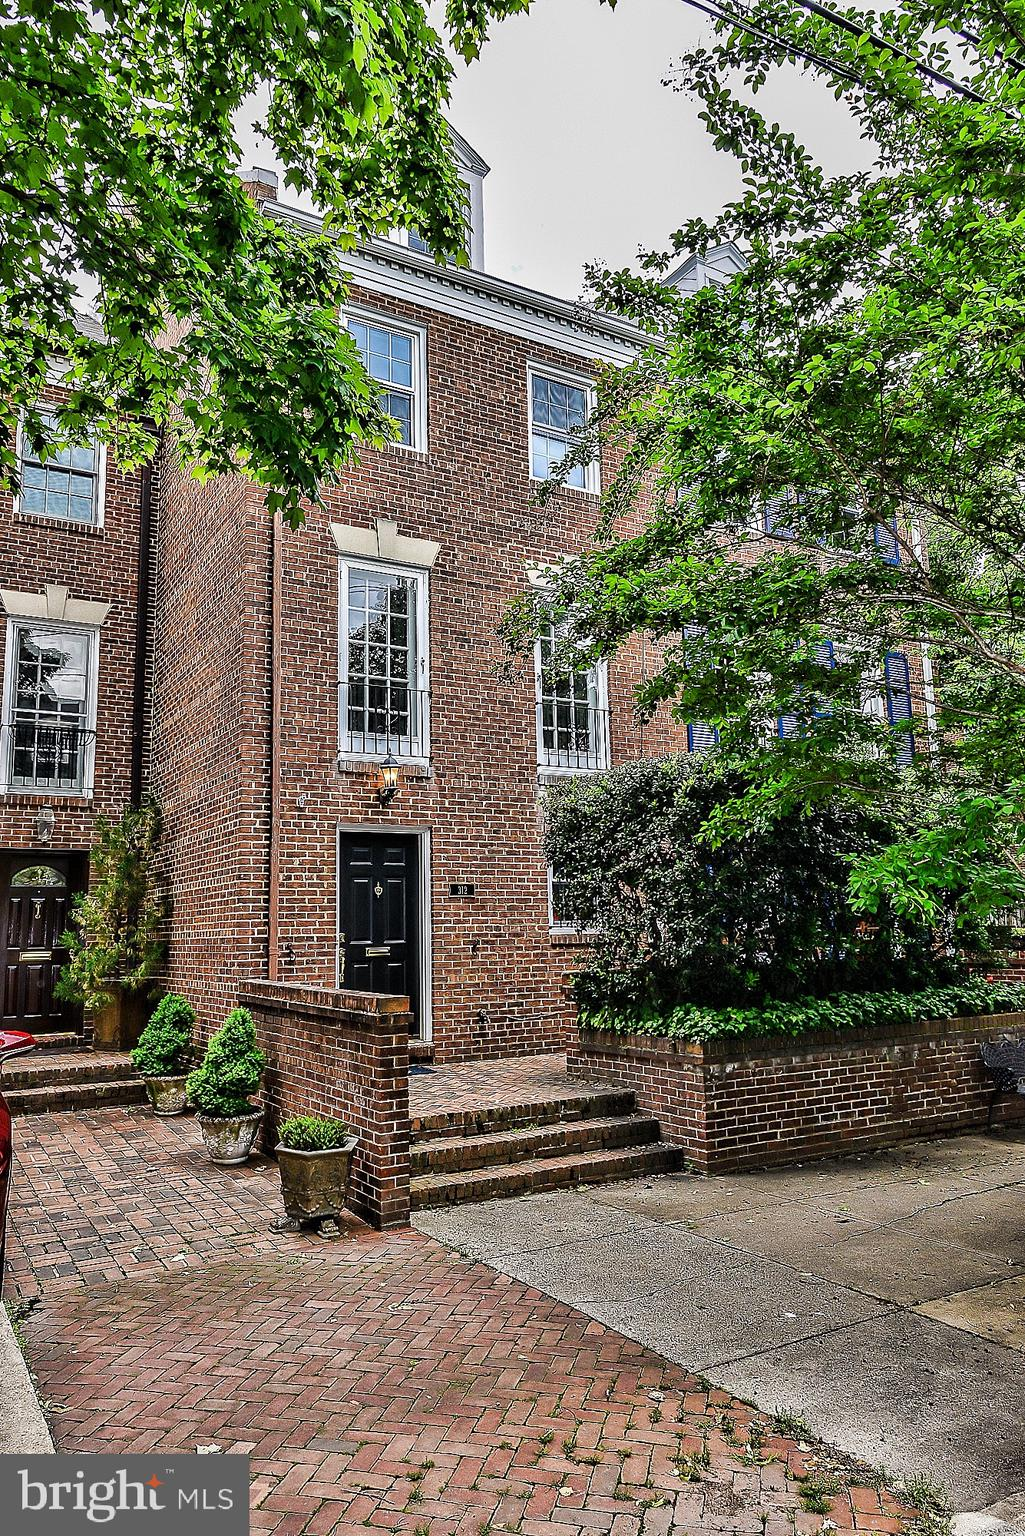 This is your opportunity to enjoy the lifestyle of Old Town Alexandria and make this wonderful home your dream home!  Charming brick townhome with over 2,700 s.f. of light-filled space ** Four levels of finished space with 3 bedrooms and 3.5 bath ** Beautiful and newly refinished hardwood floors throughout ** Entry foyer with exposed brick wall and slate floor ** First floor office/library ** Living room with brick fireplace, wet bar and French doors to patio ** Great kitchen and family room combo with brick fireplace and French doors overlooking patio ** Separate formal dining room ** Three generous bedrooms with ample closet space **PDS to floored attic for storage ** Charming deep brick patio ** Freshly painted throughout ** One off street parking space  in rear ** Short walk to the shops, restaurants and riverfront parks of oOld Town!